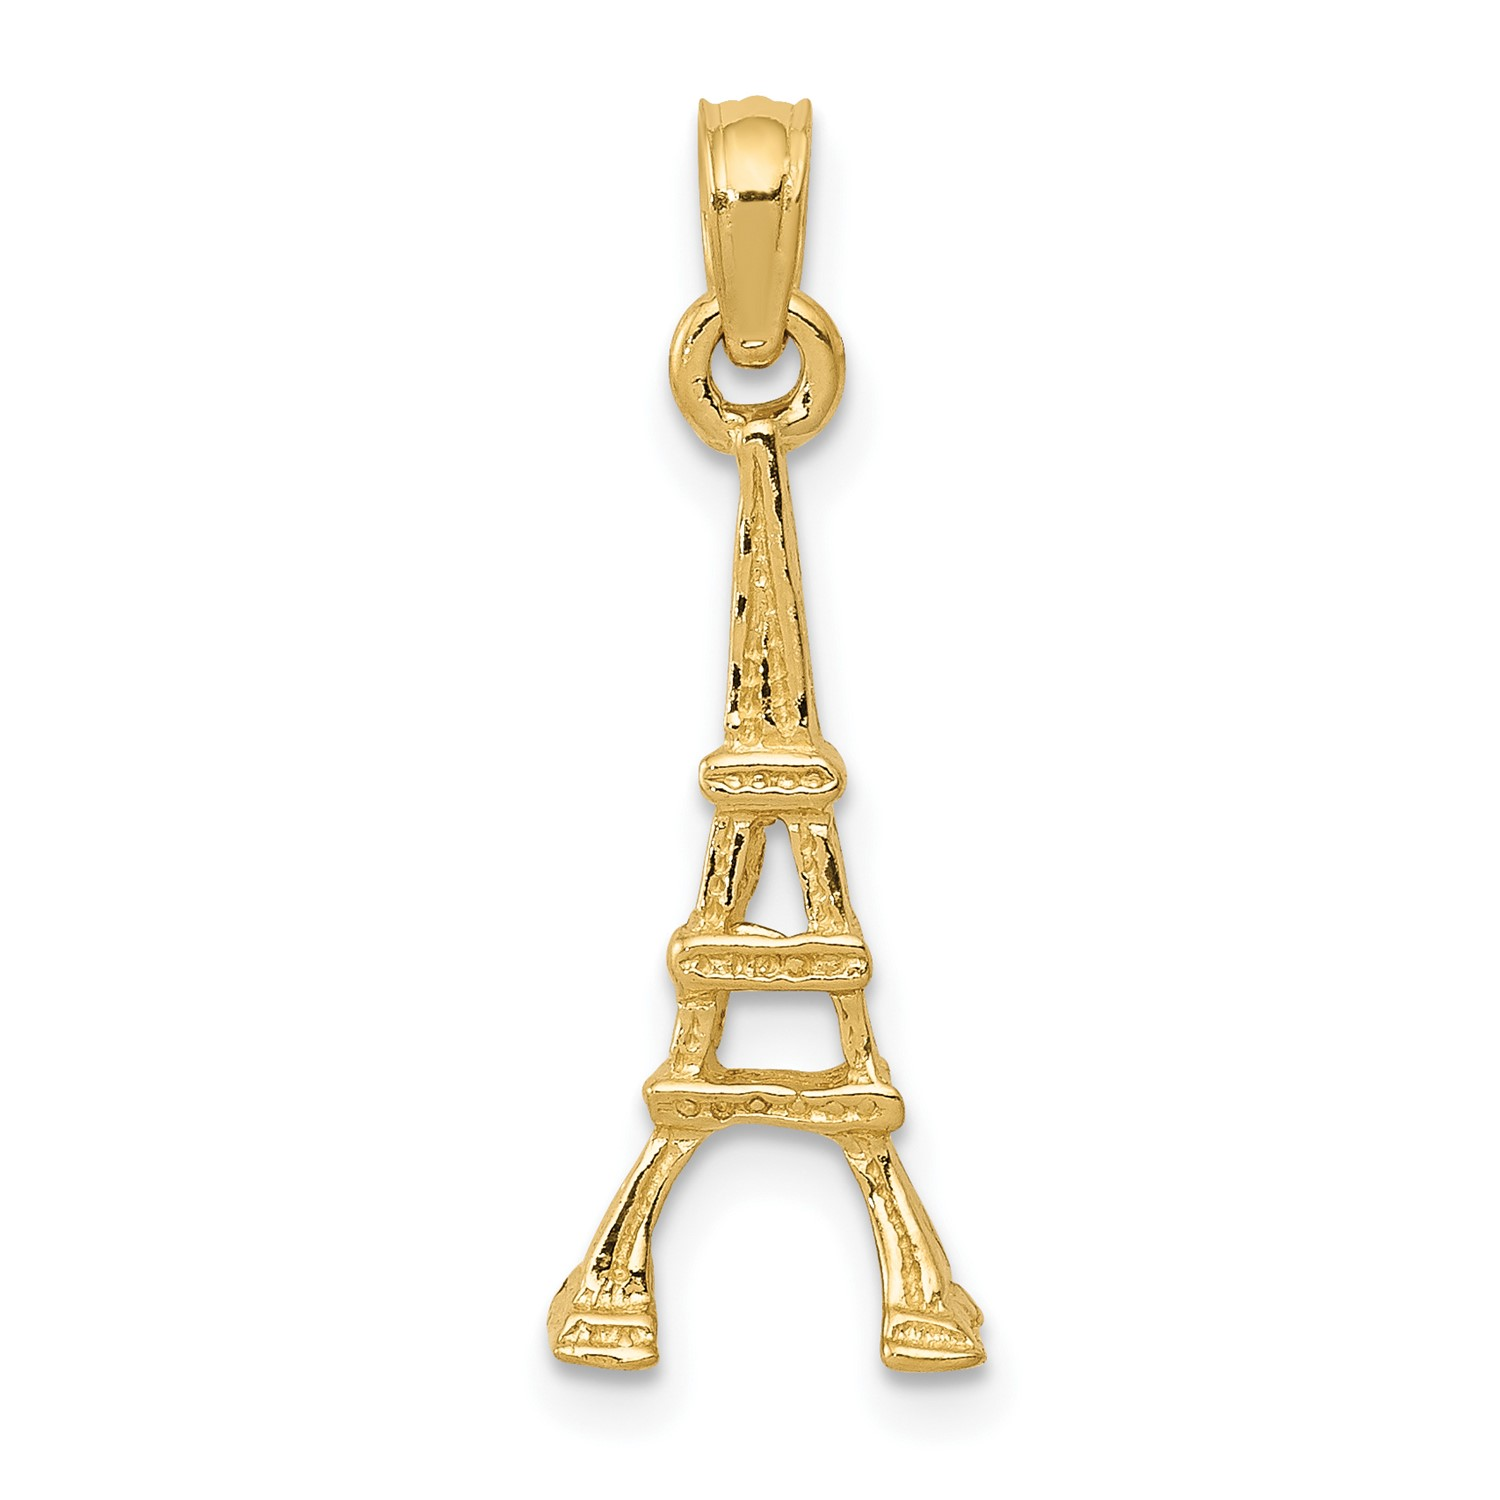 b02c6c0f1 ... charm vintage estate bella antiques and. Thumbnails To Enlarge. 14k  Yellow Gold Eiffel Tower Pendant 0 9in Long